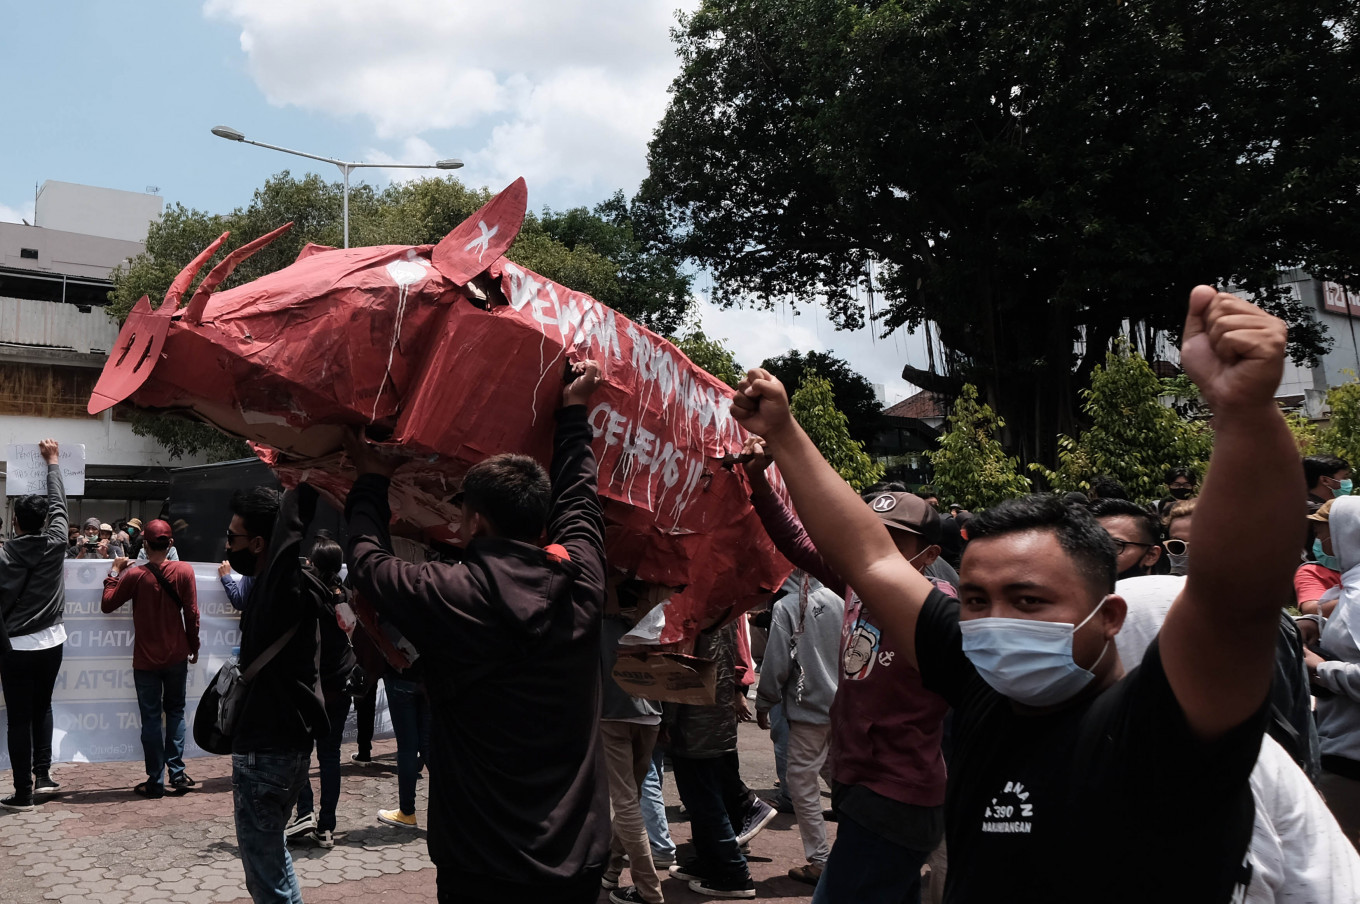 Seeing red: Protesters hold a giant effigy of a wild boar during a protest against the Job Creation Law on Thursday, October 8. 2020 at the Yogyakarta Legislative Council in Malioboro, Yogyakarta. JP/Donny Fernando